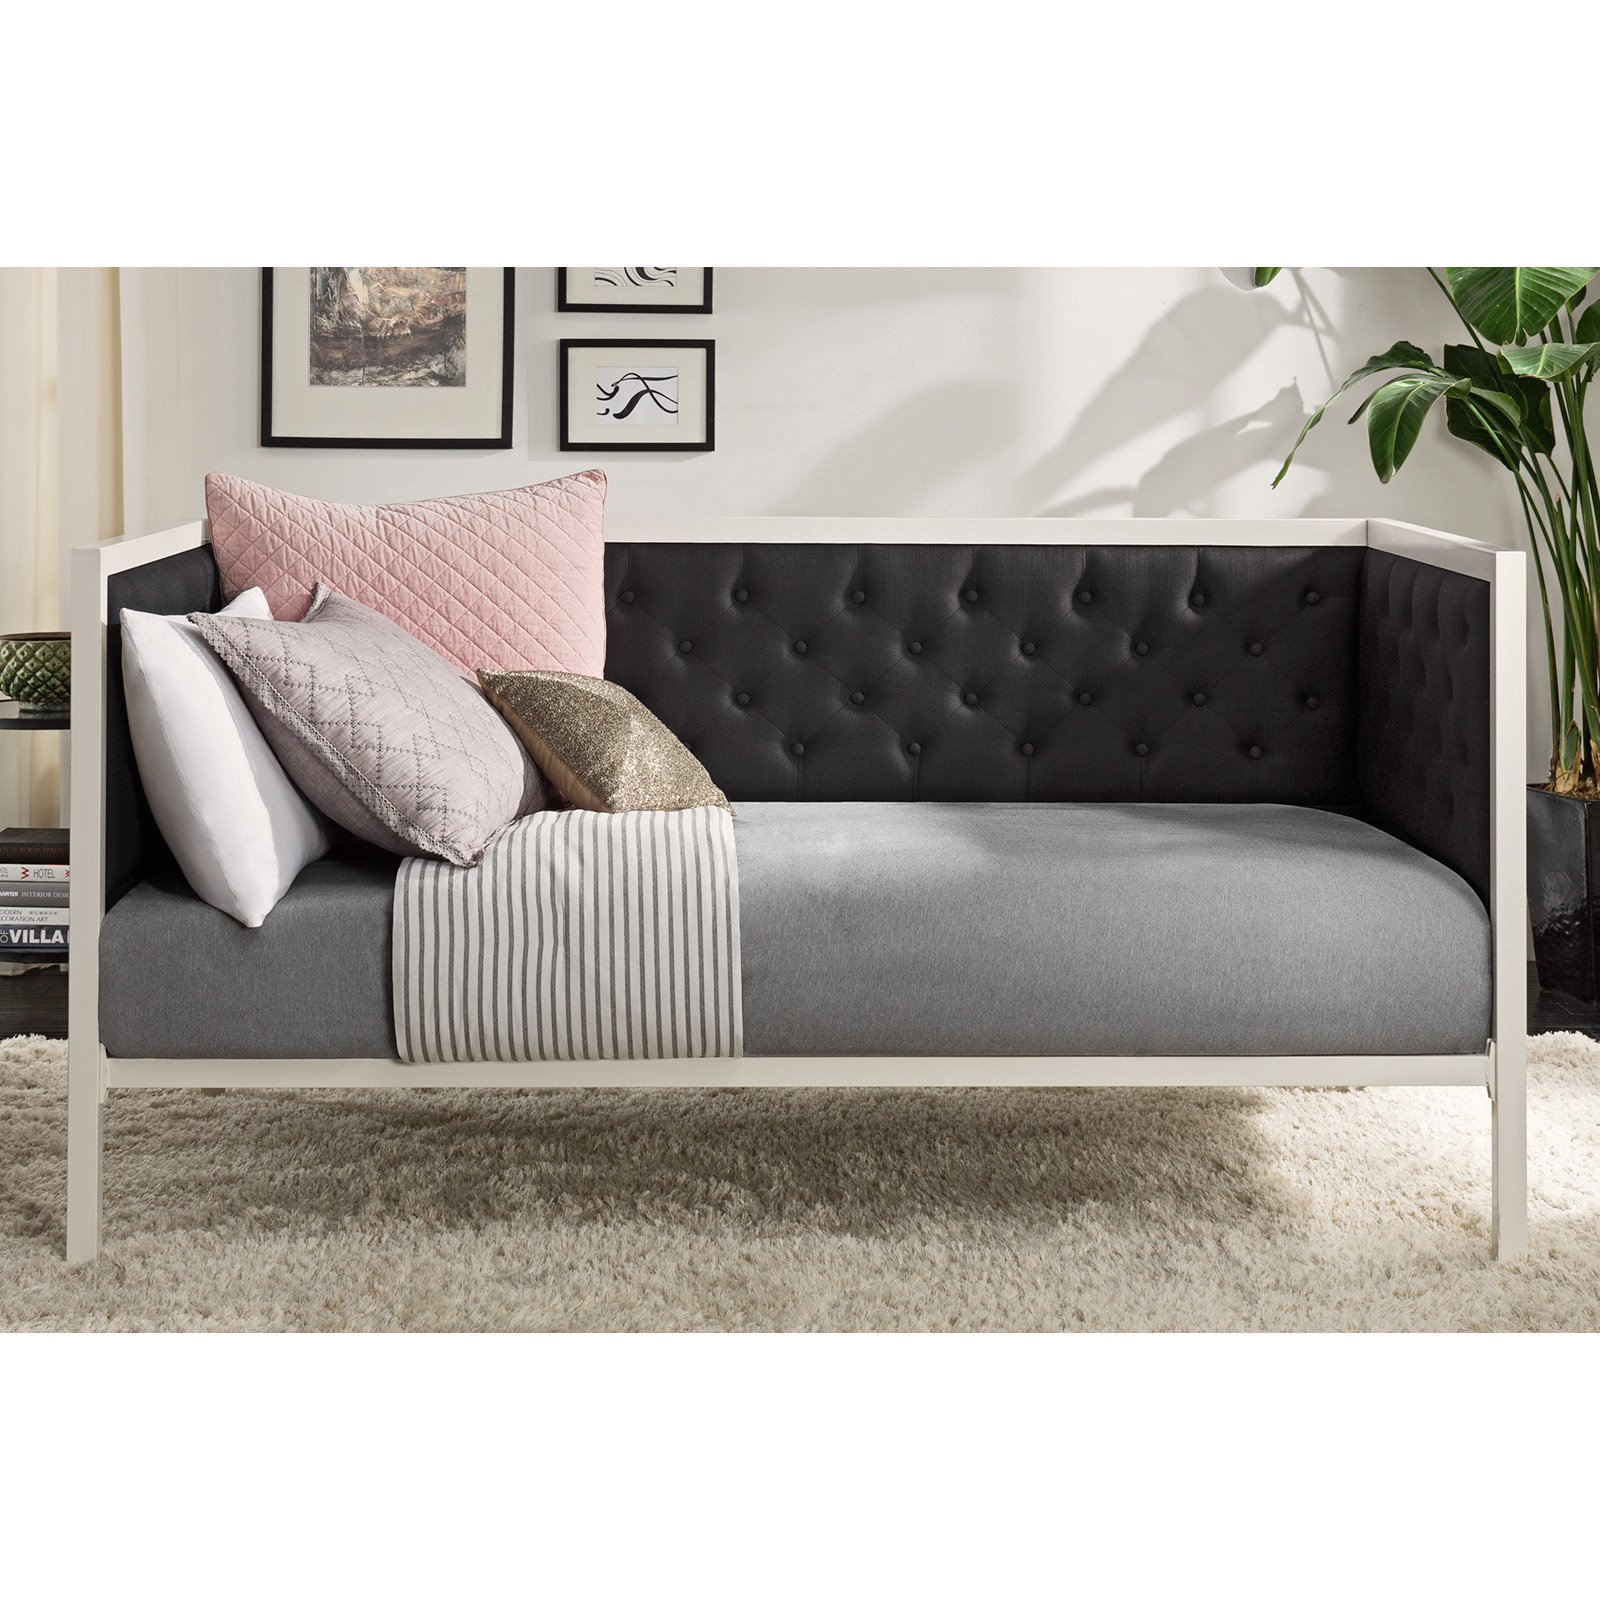 DHP Soho Day Bed by Overstock